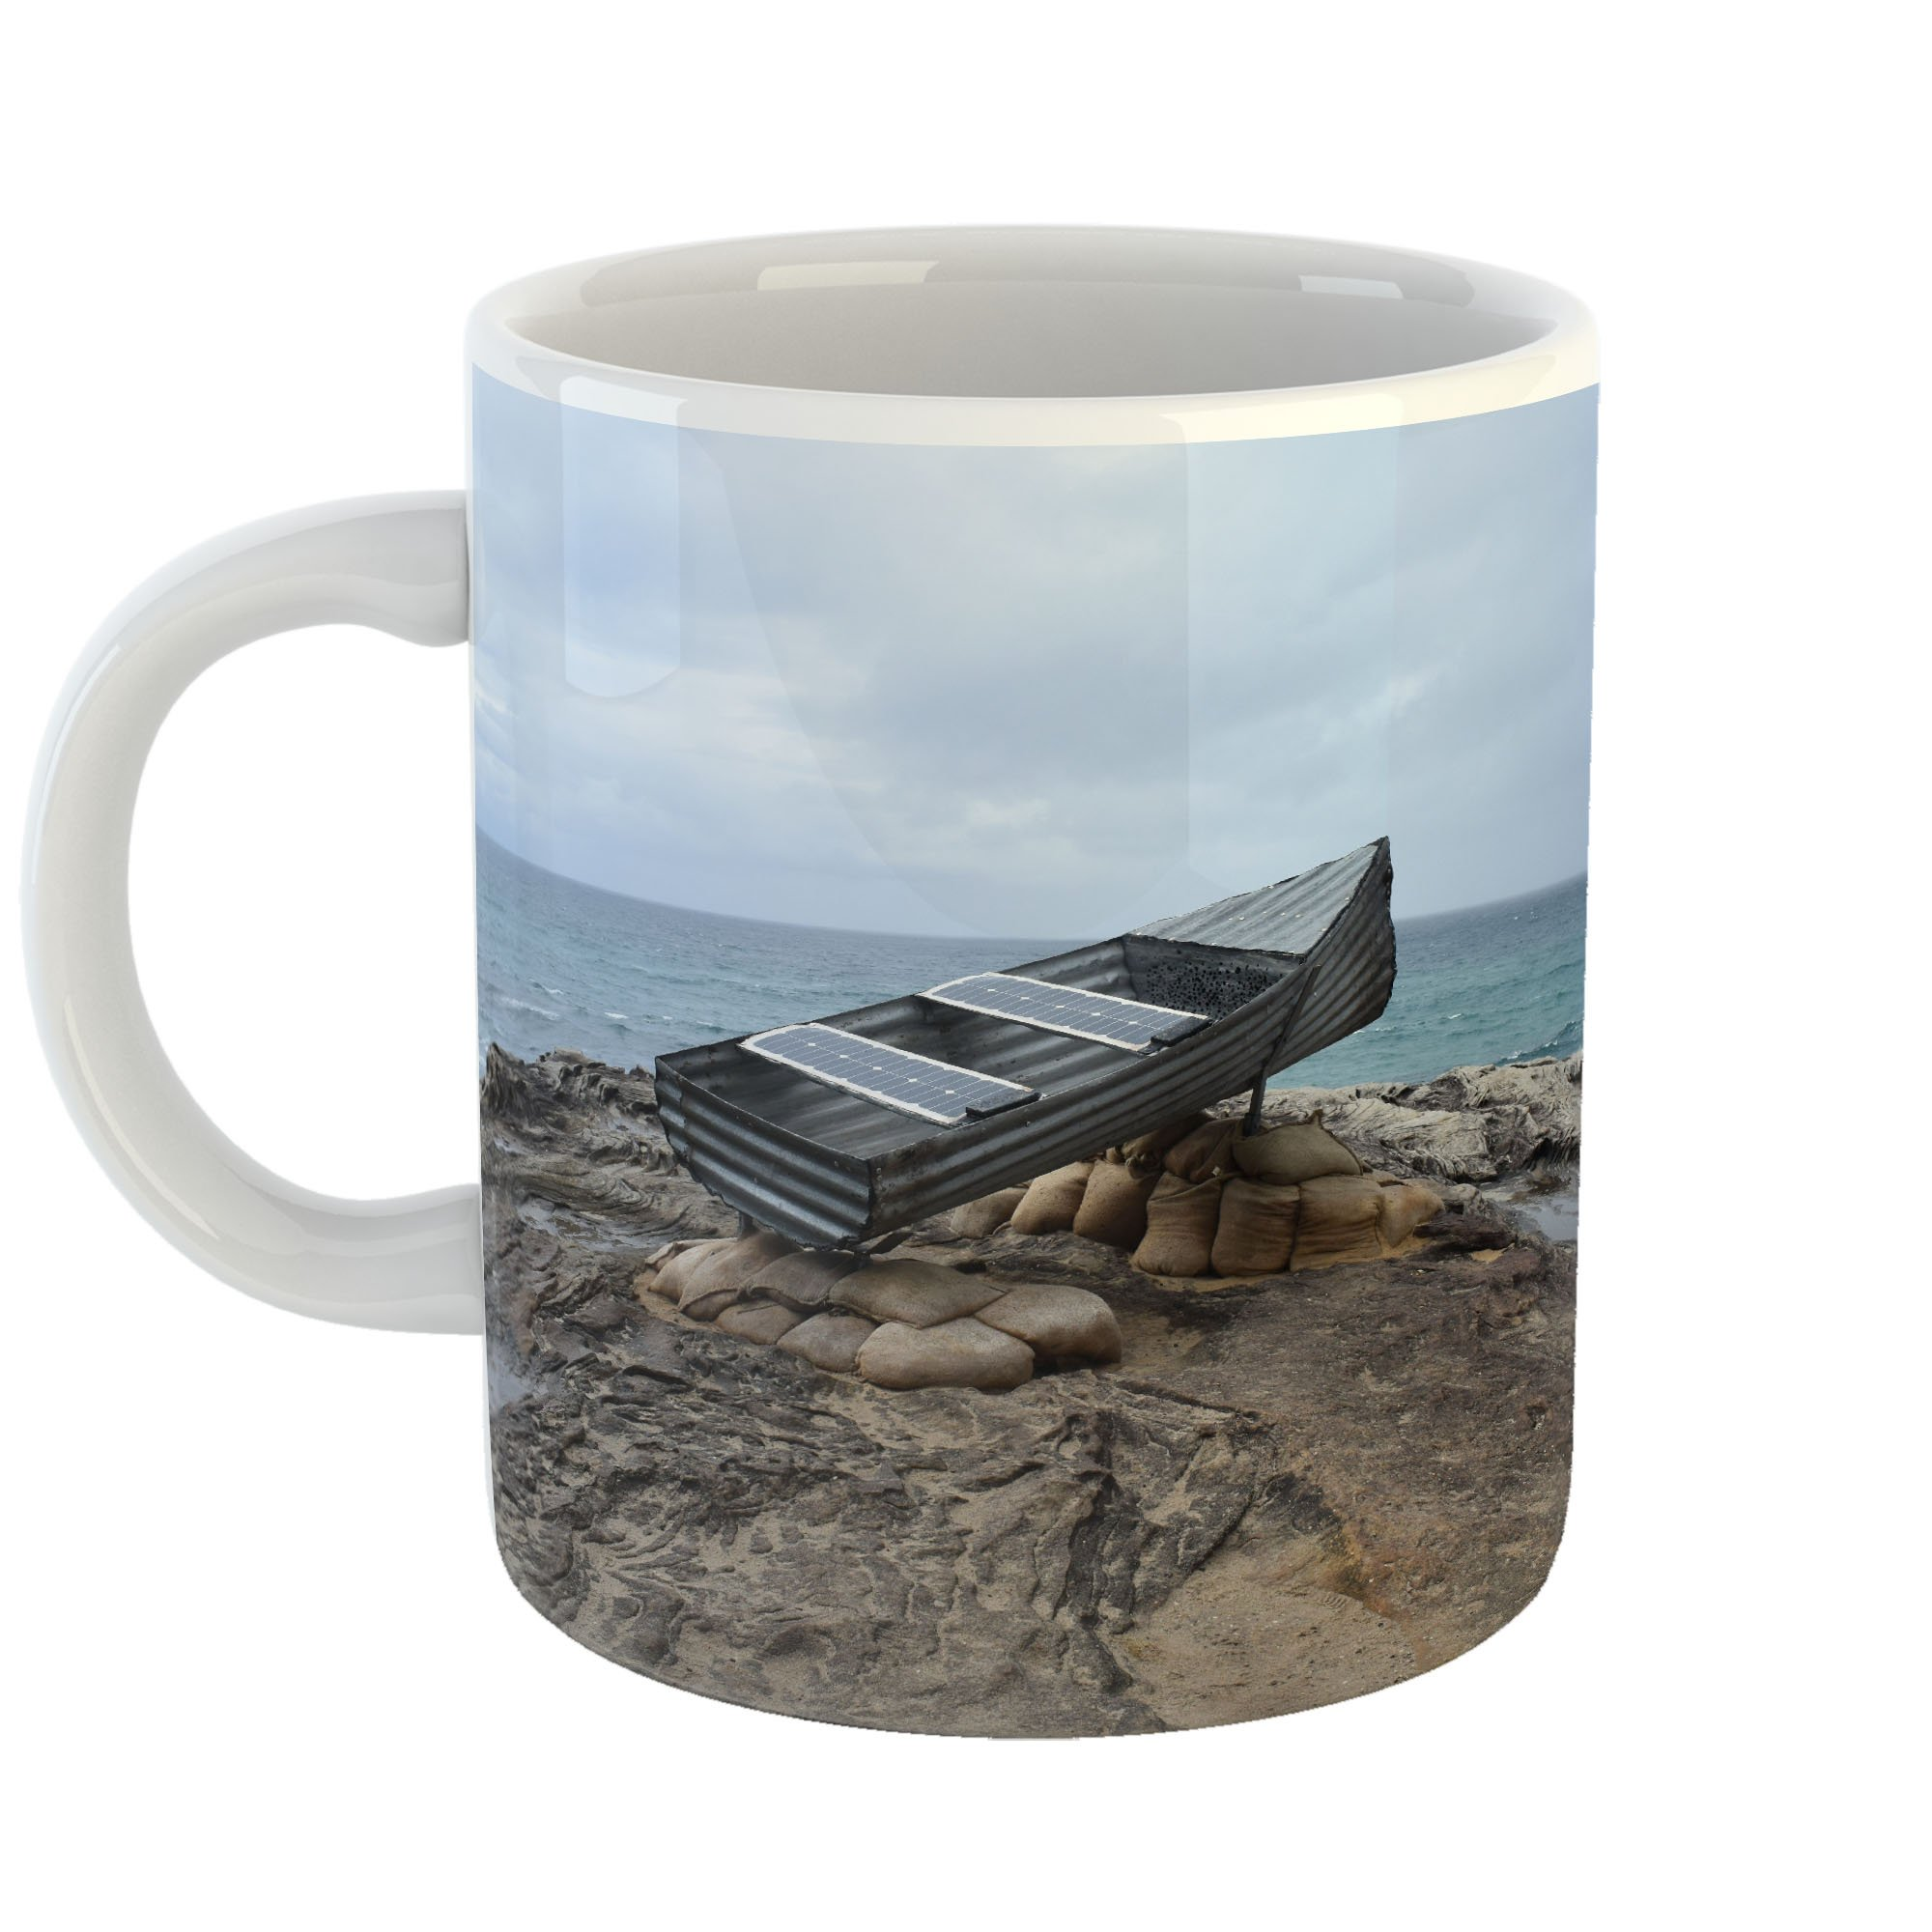 Westlake Art - Art Solar - 11oz Coffee Cup Mug - Modern Picture Photography Artwork Home Office Birthday Gift - 11 Ounce (94FE-1A344)